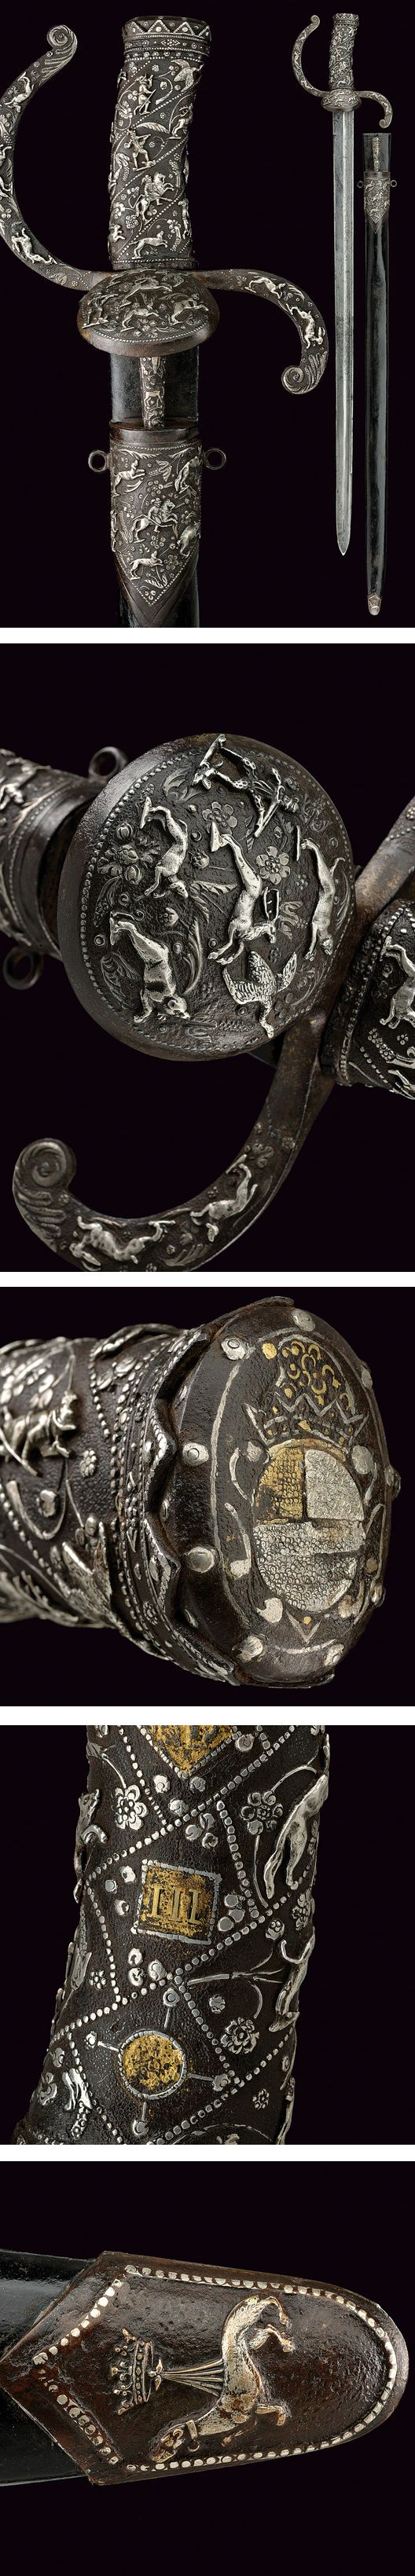 An important and exceptional hunting sword. DAGGERS provenance: Germany dating: third quarter of the 16th Century.